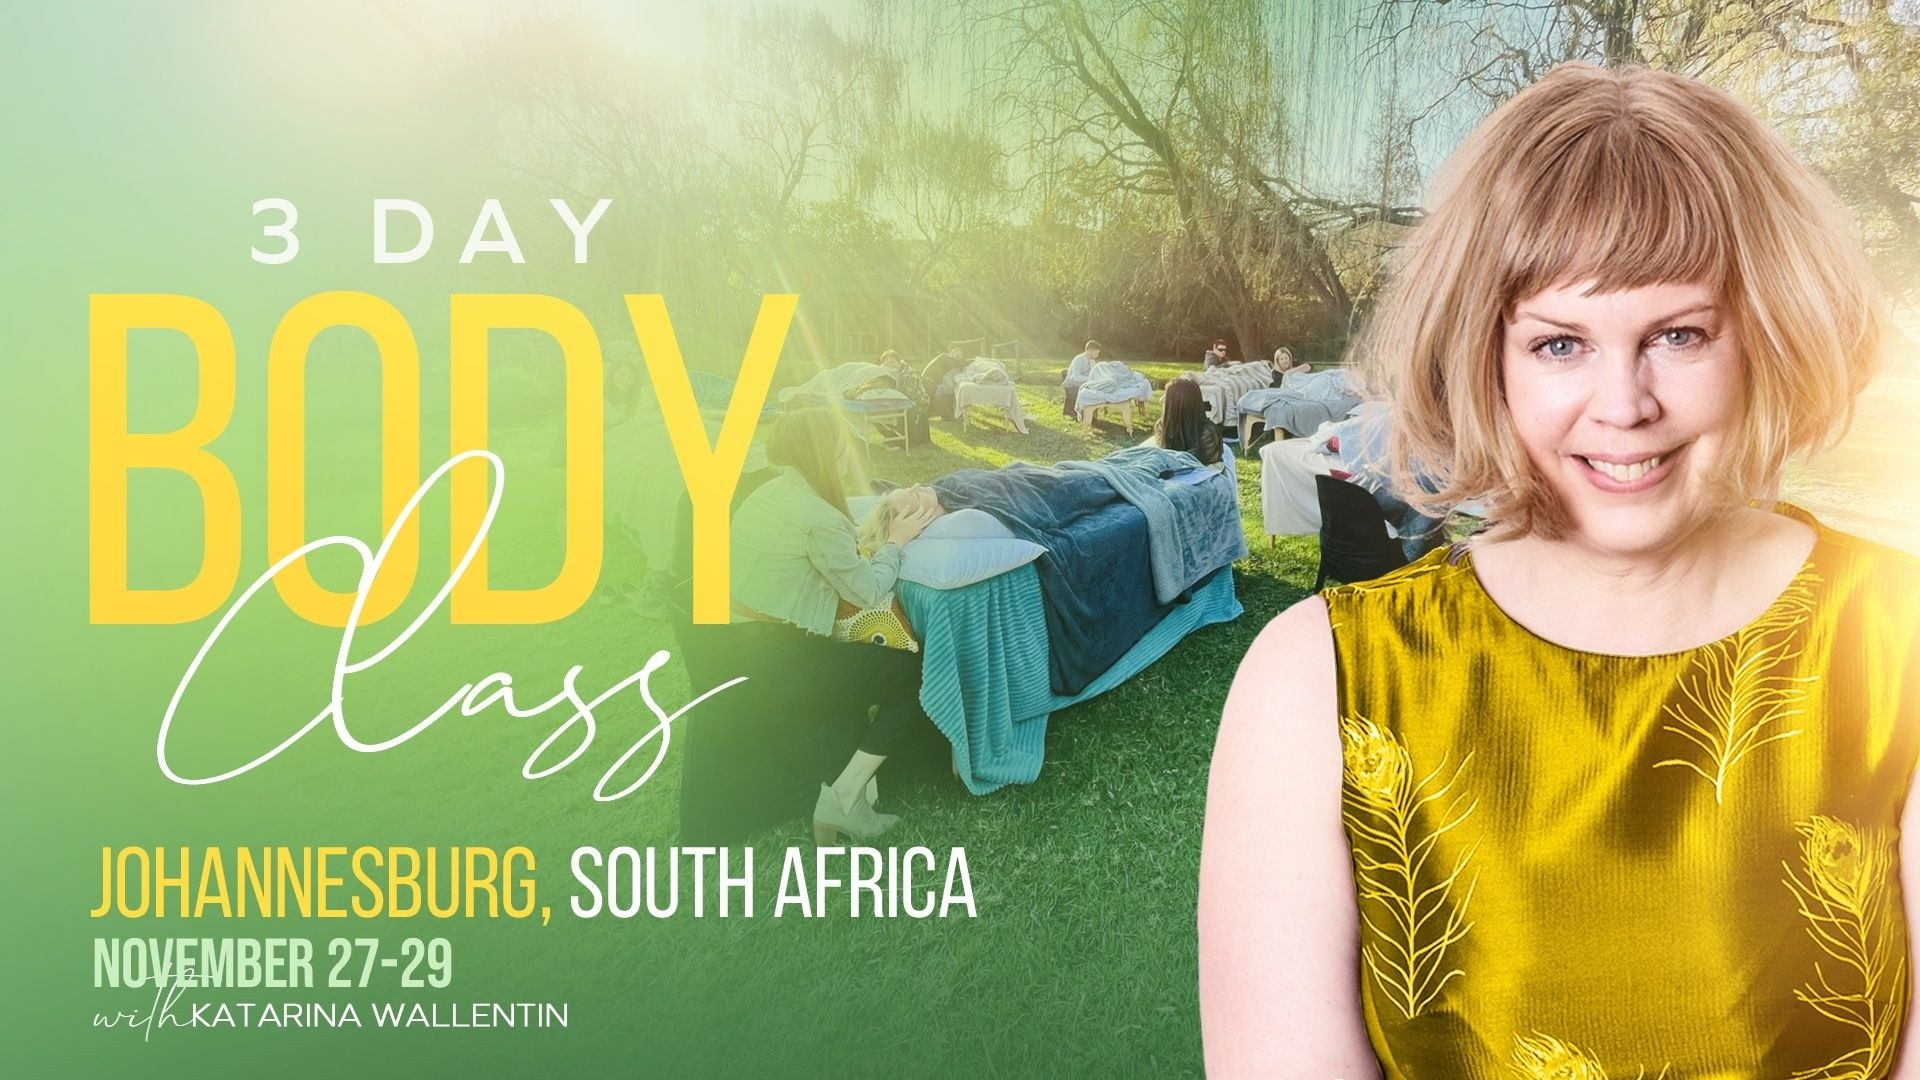 3 Day Body Class with Katarina Wallentin in Johanesburg, South Africa